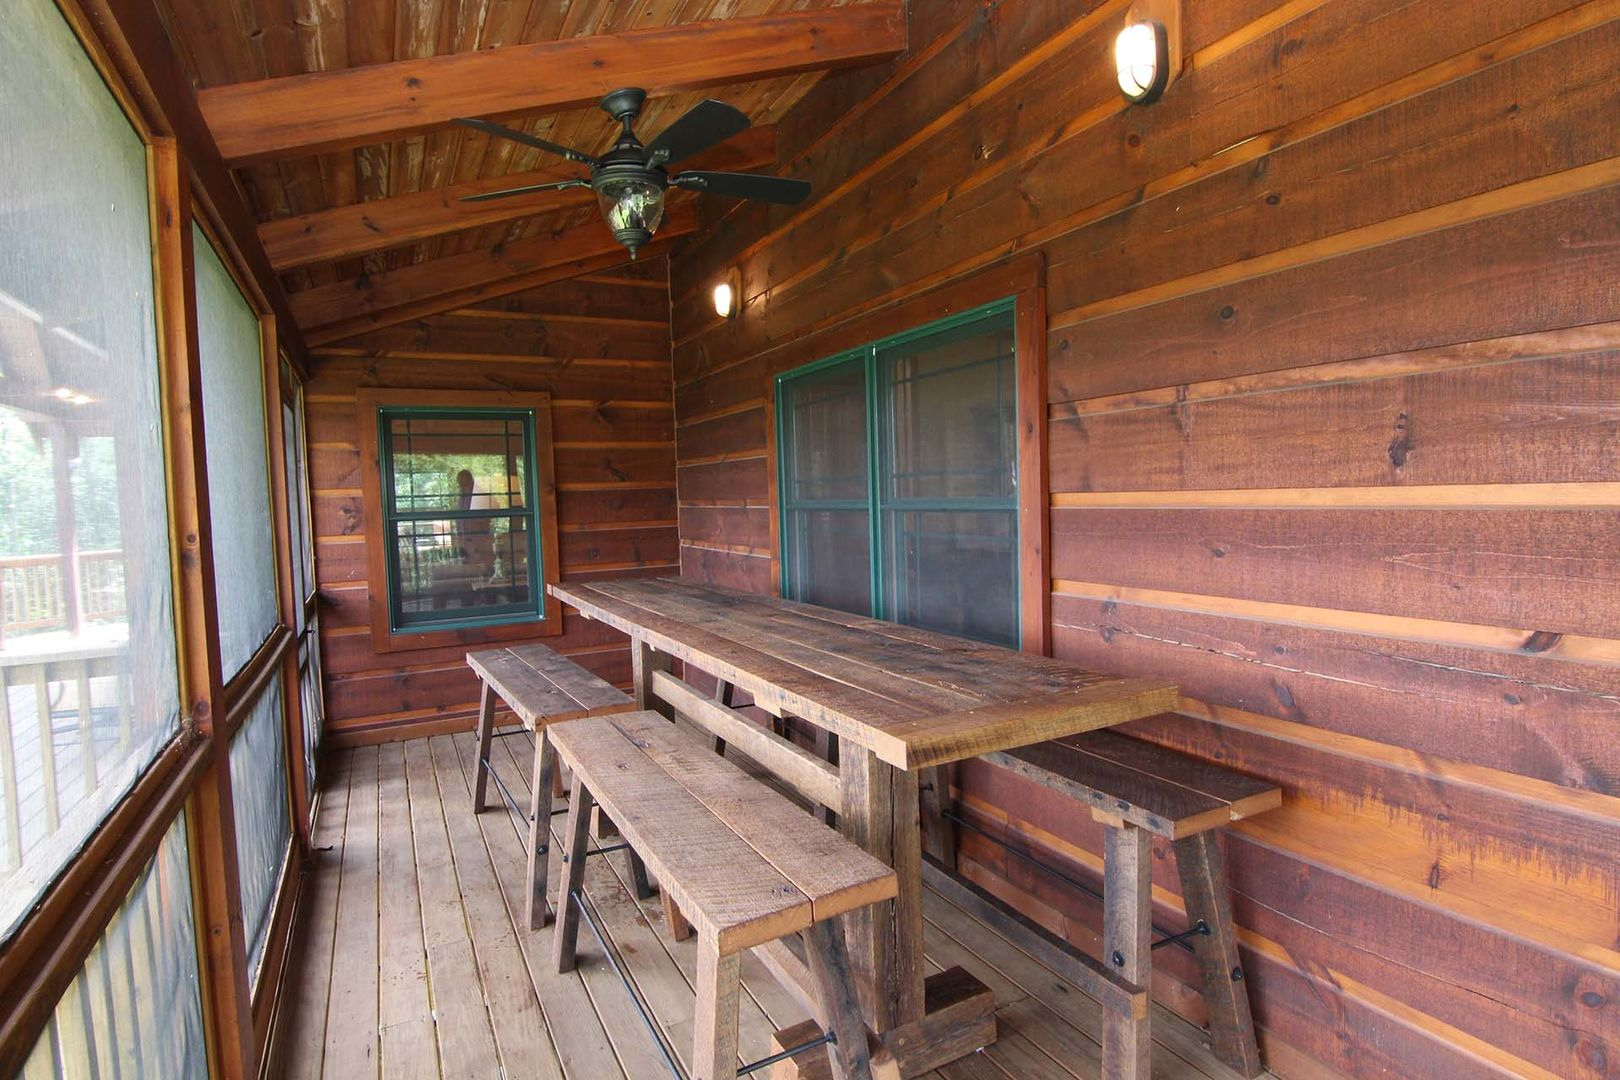 Covered deck with picnic tables